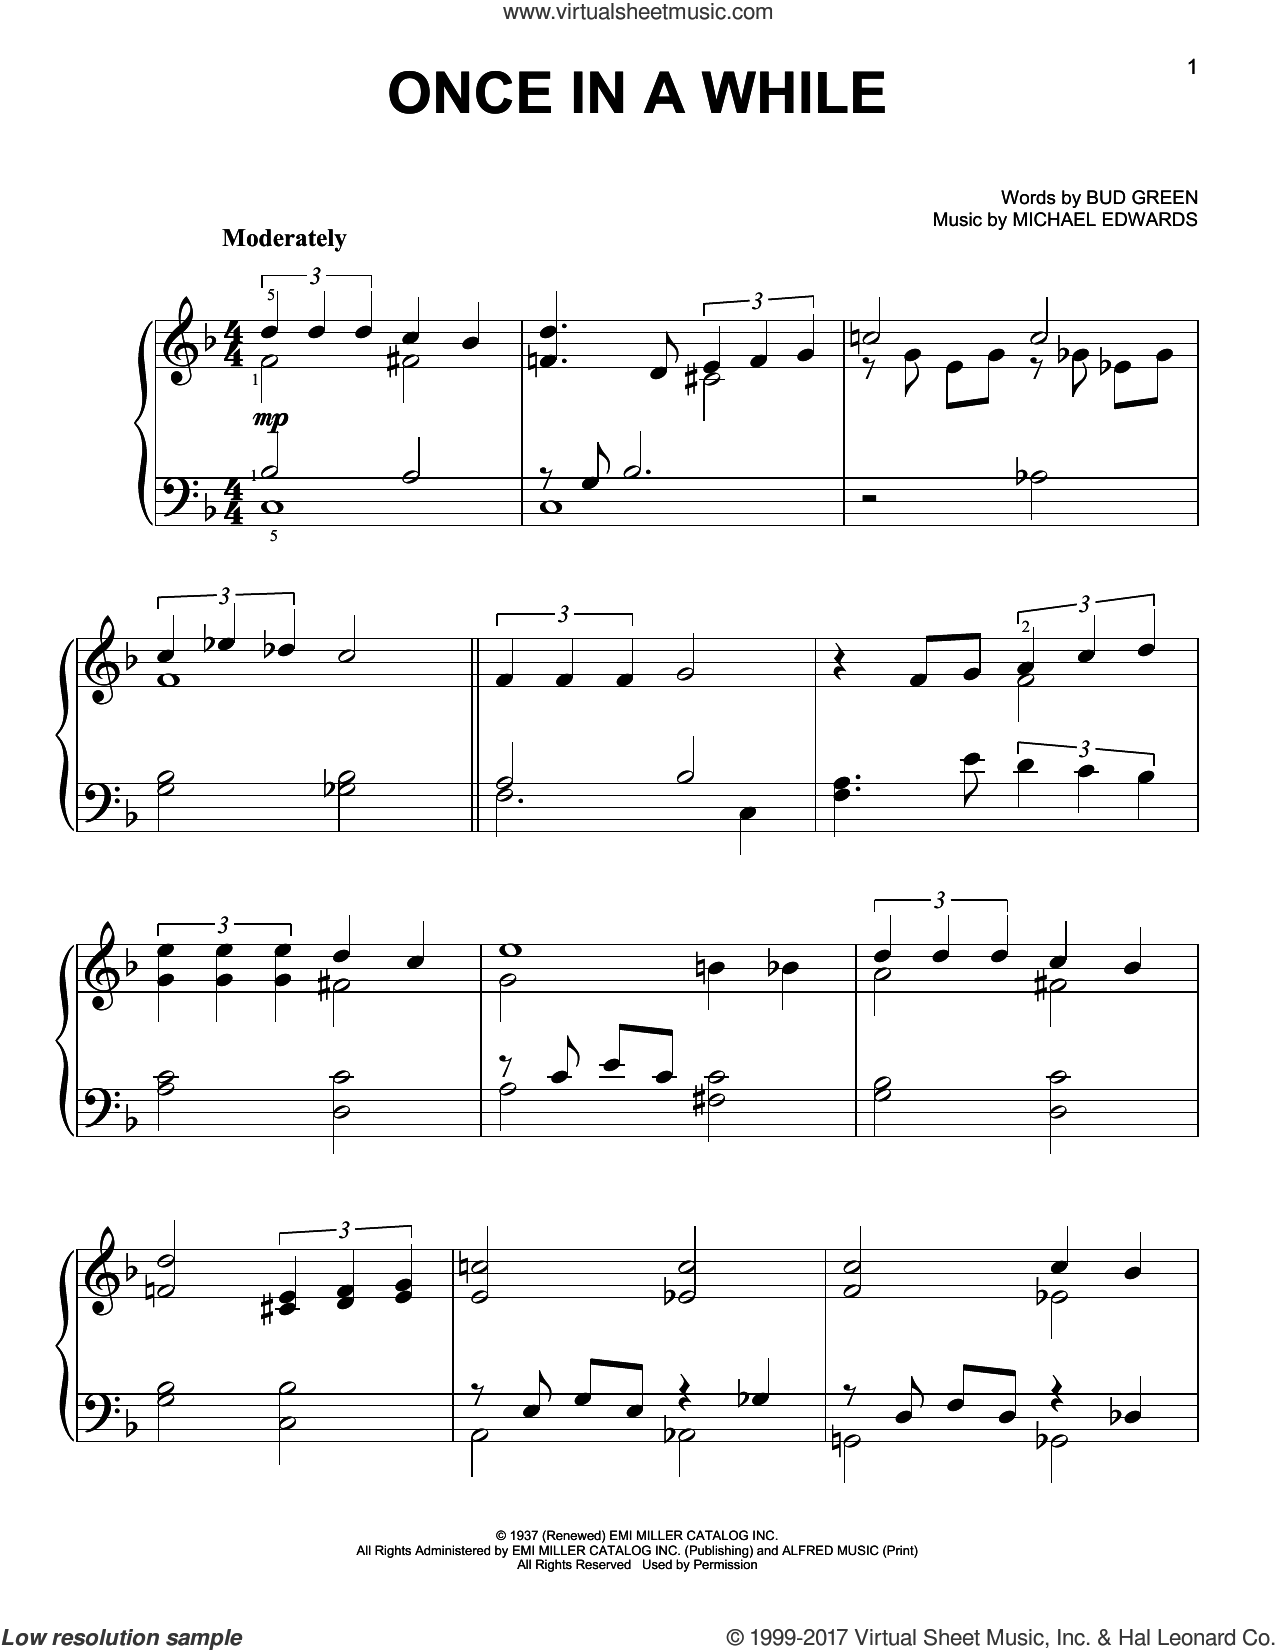 Once In A While sheet music for piano solo by Bud Green and Michael Edwards, easy skill level